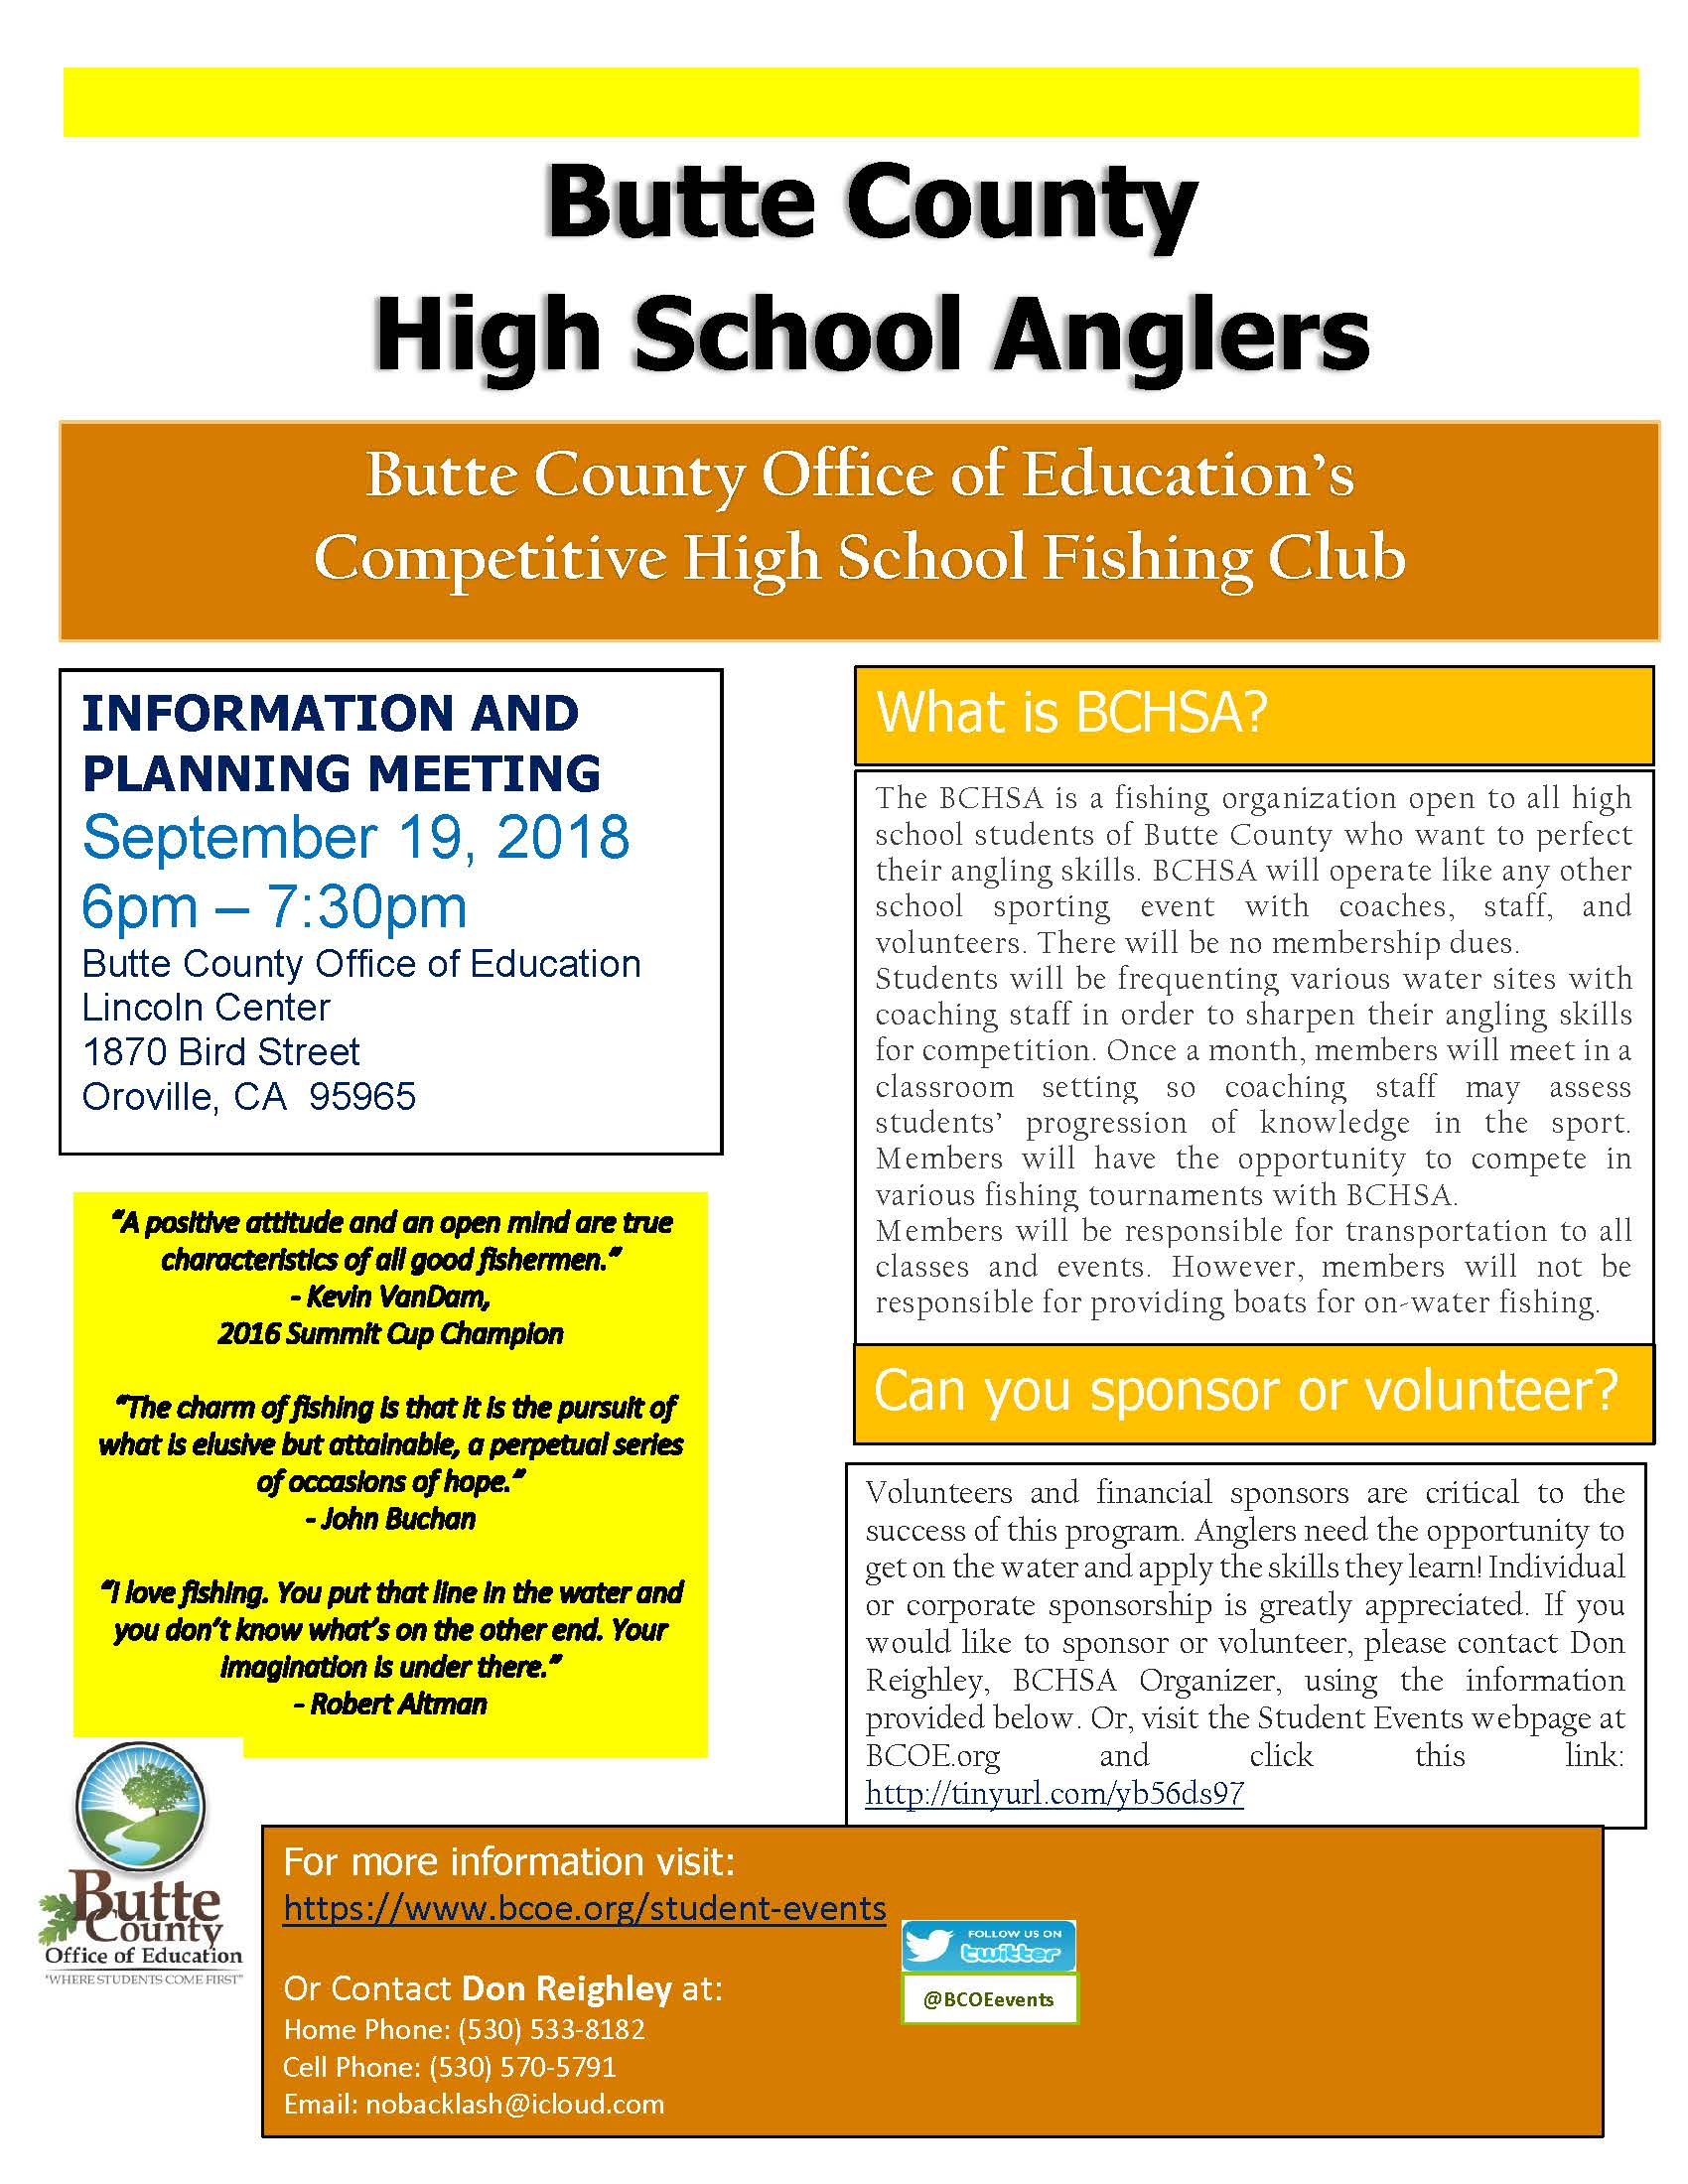 Butte County High School Anglers Flier